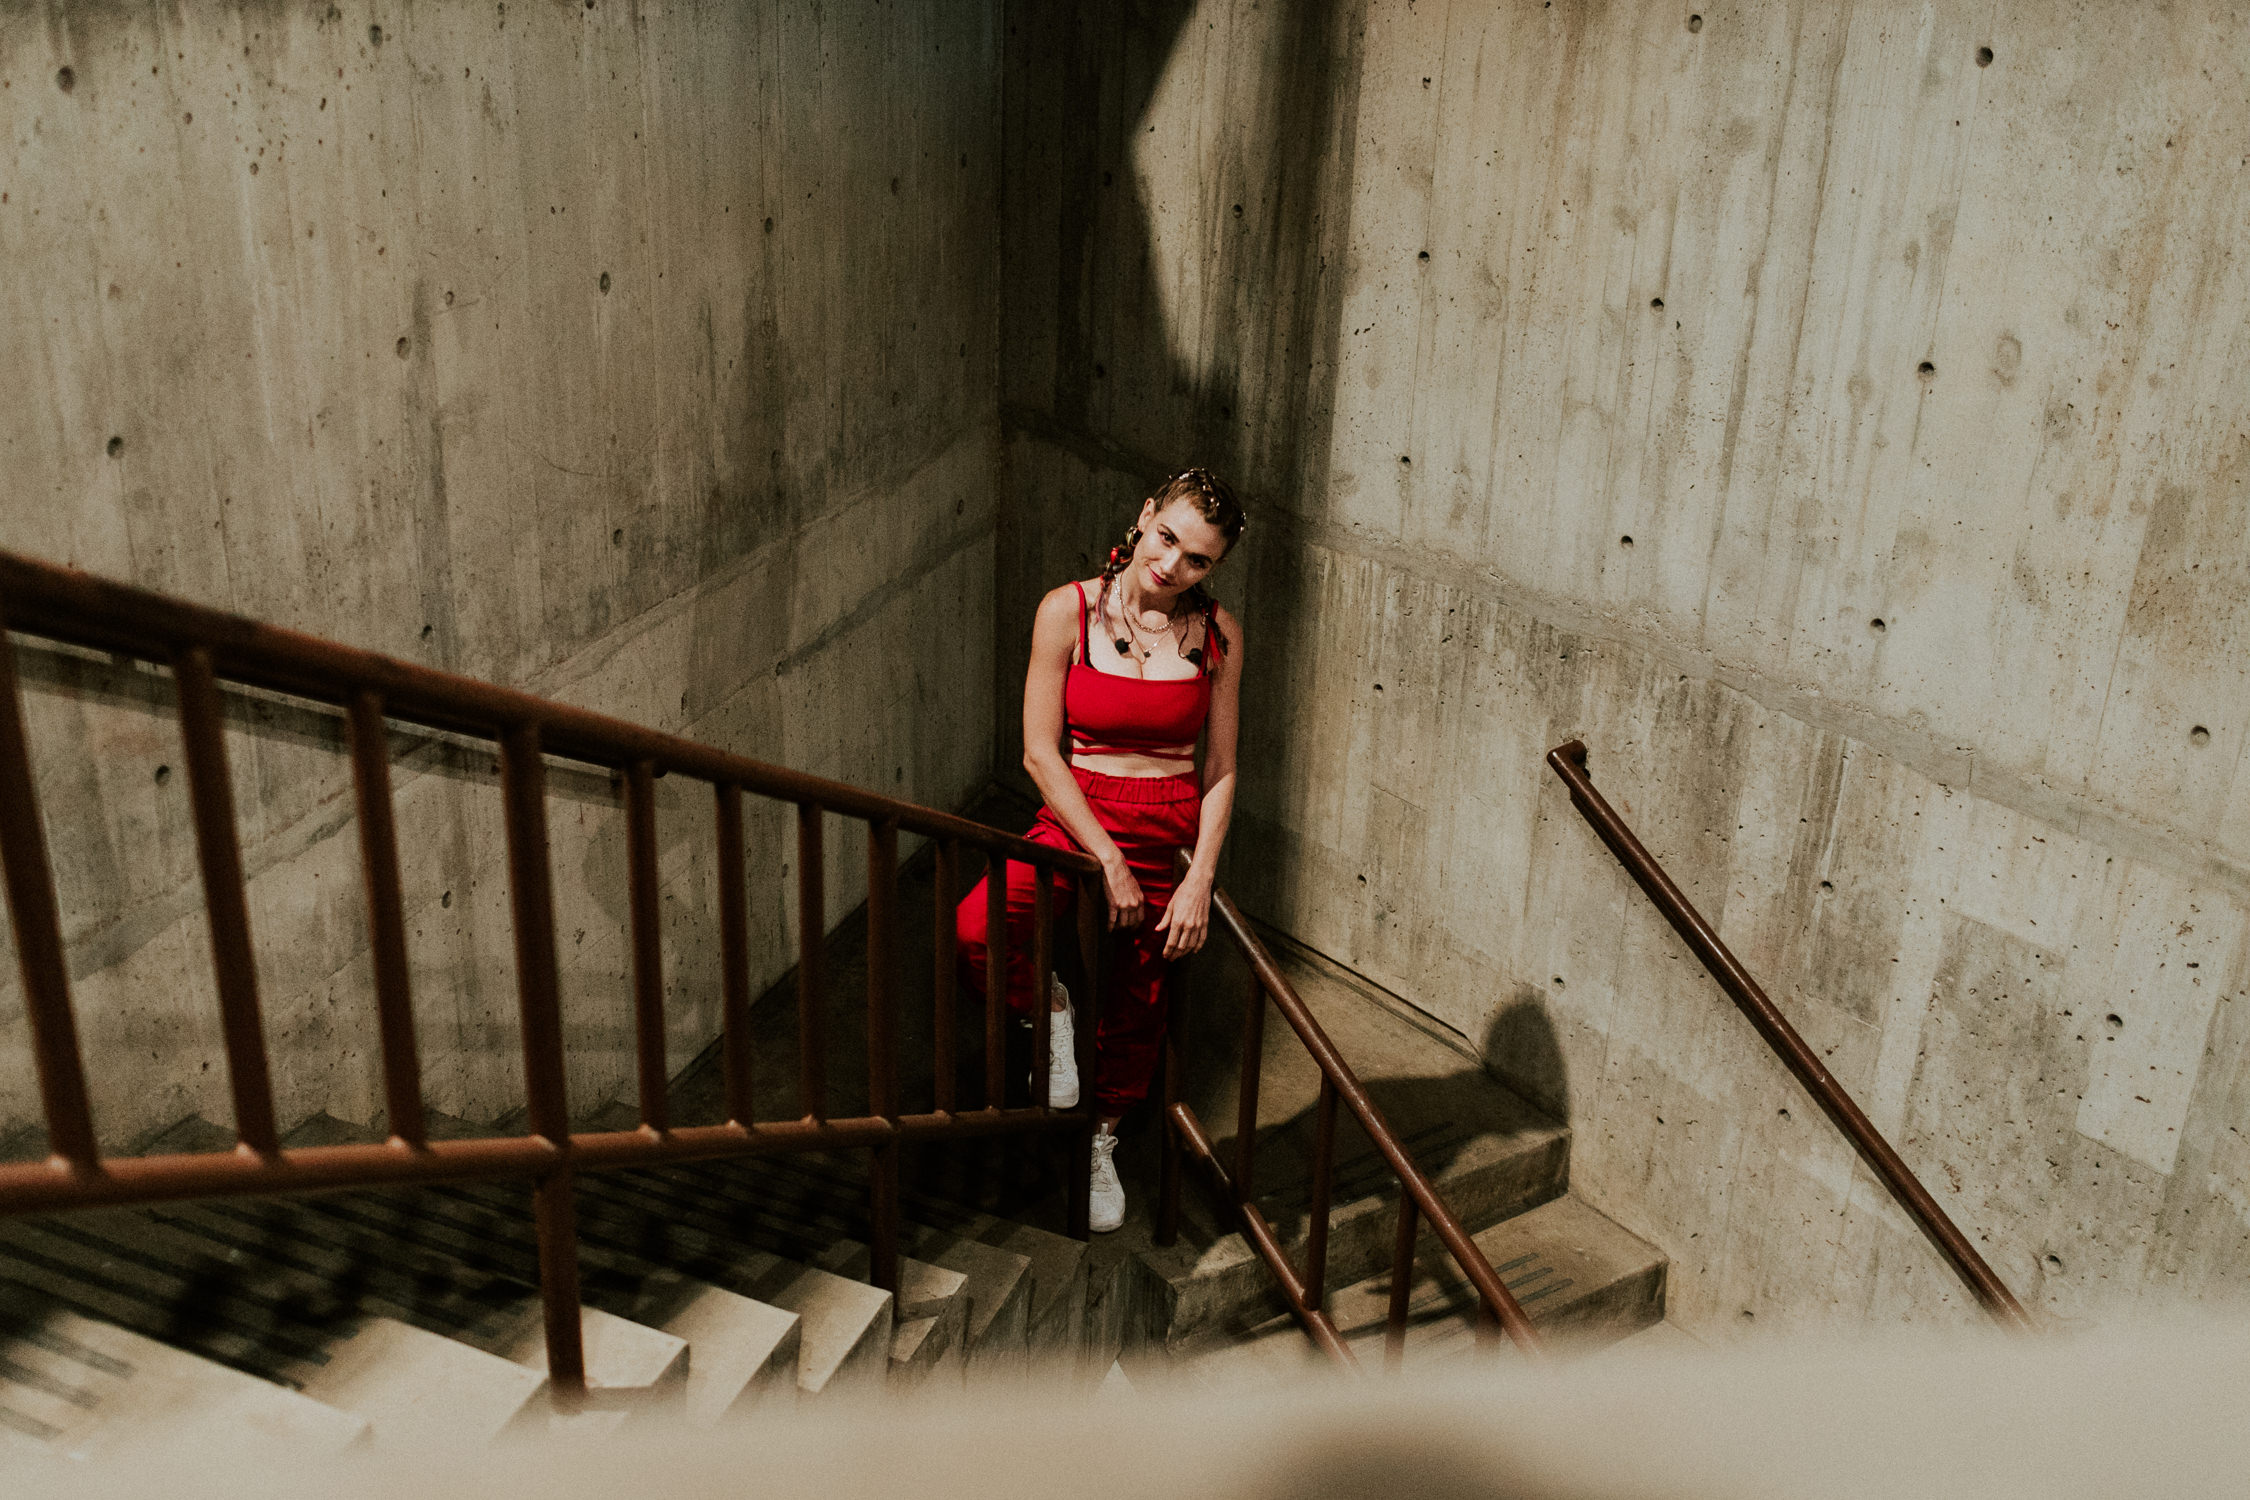 mandy-lee-pose-backstage-stairs-misterwives-AnnaLeeMedia